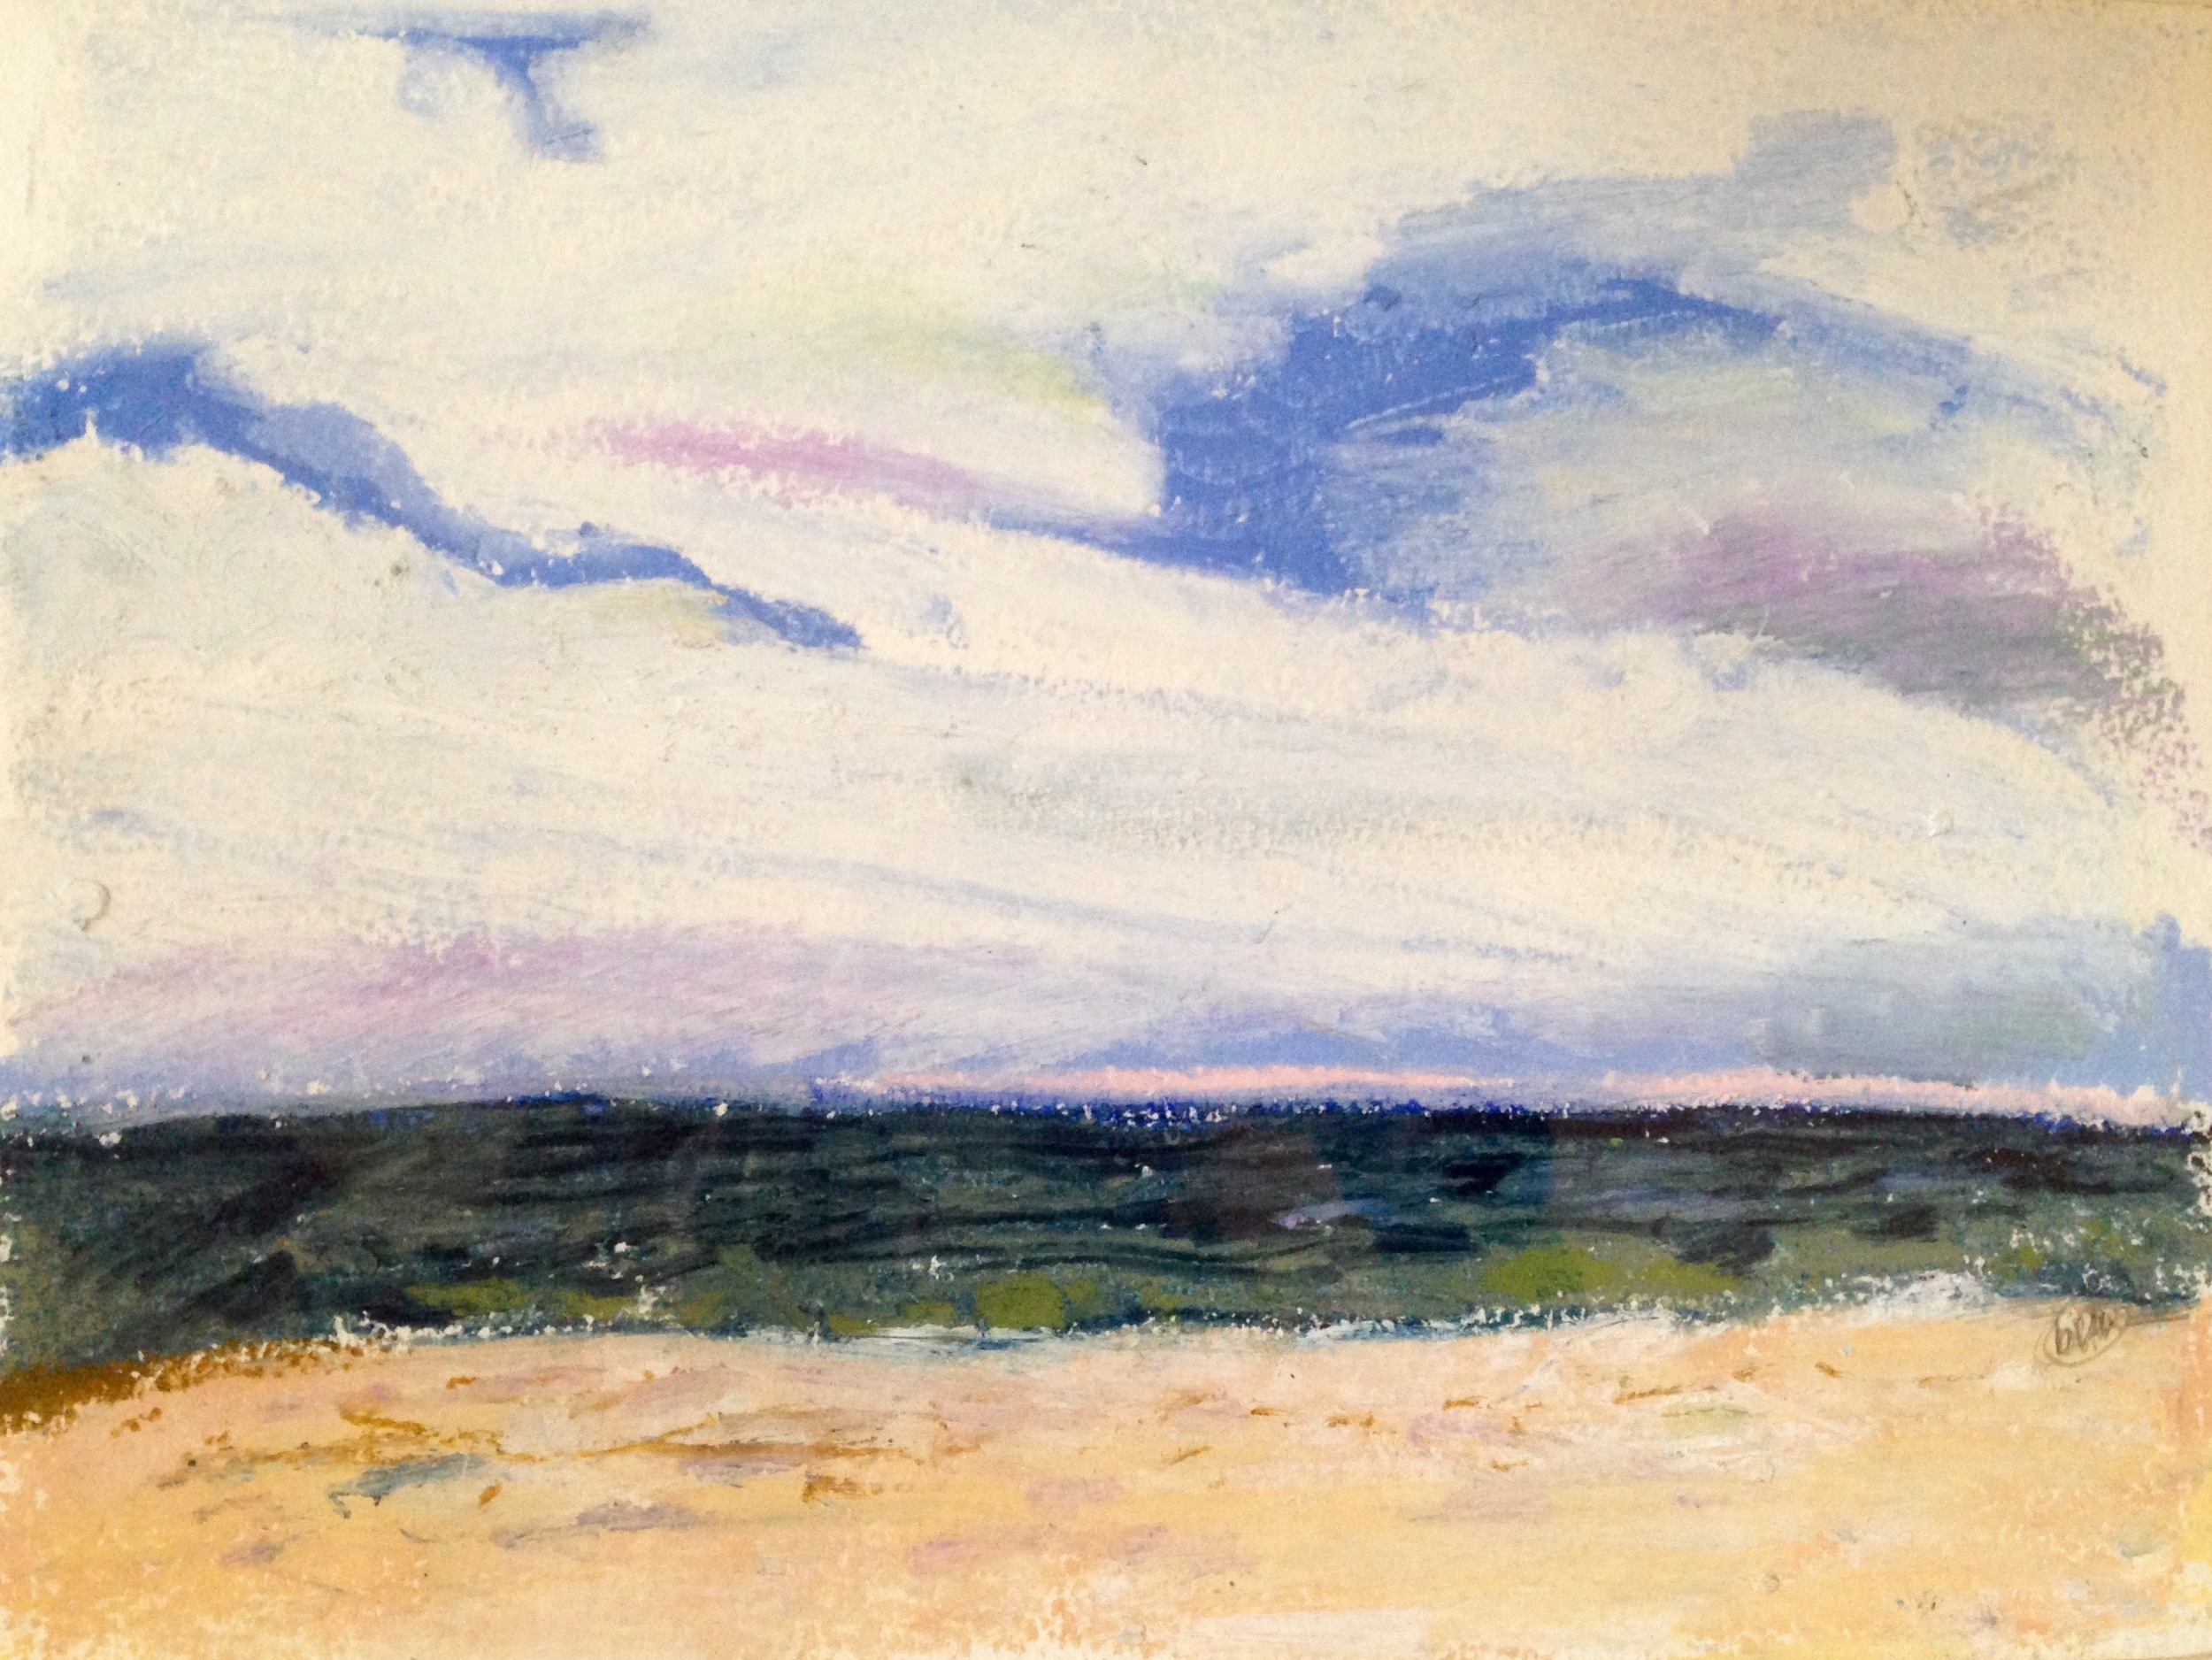 oyster bay beach     09    oil     beth vendryes williams